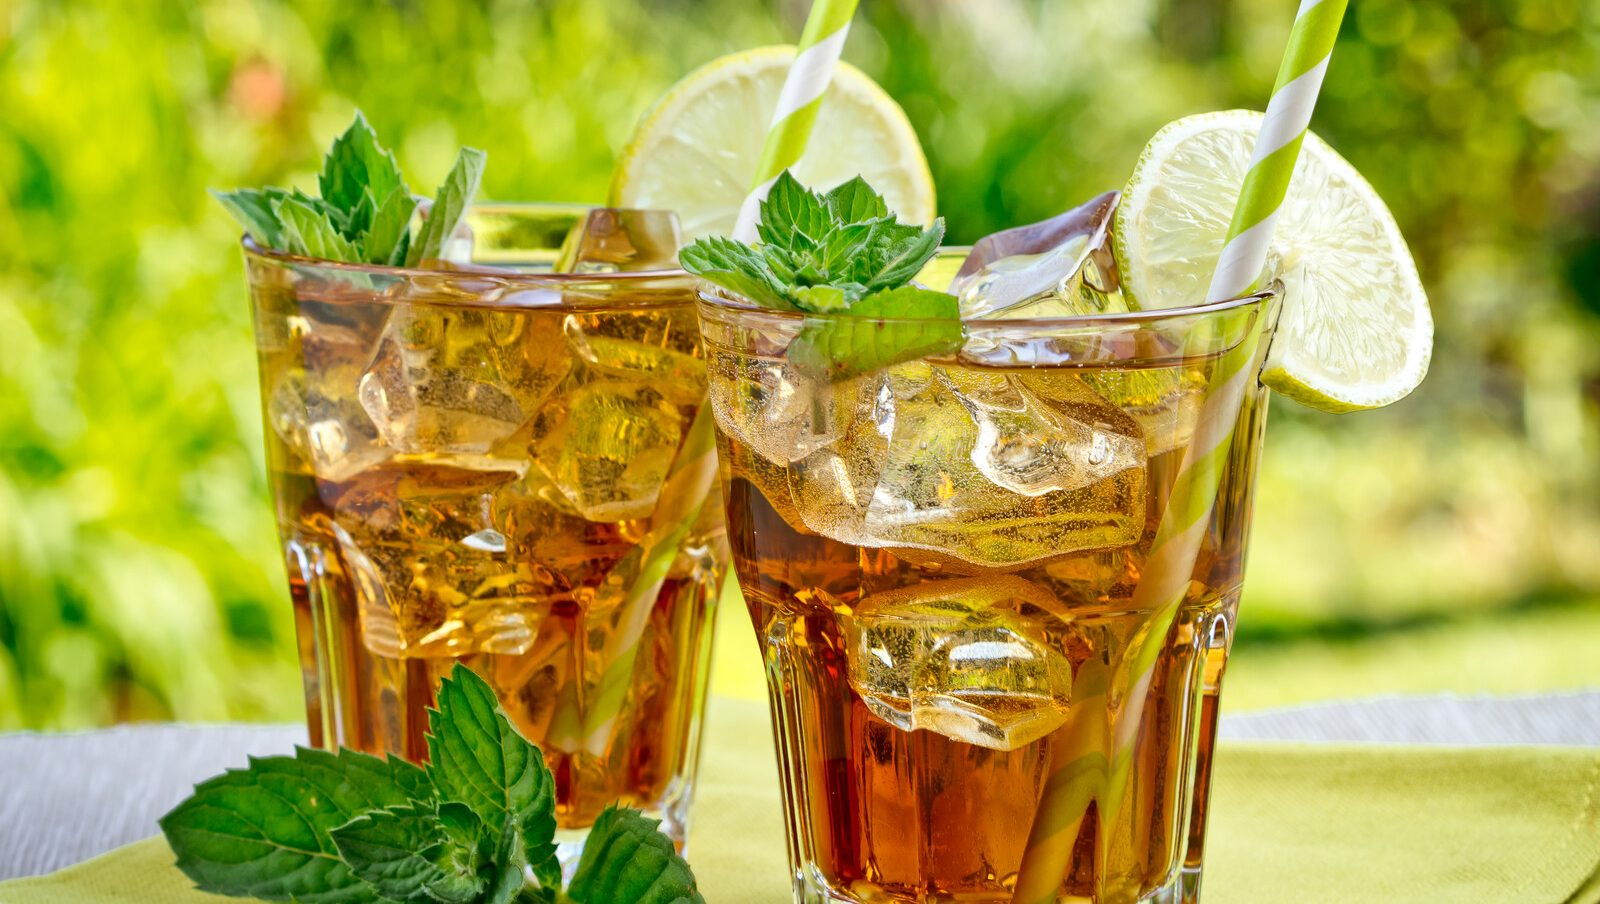 Peppermint Iced Tea from Sage Hill Botanicals